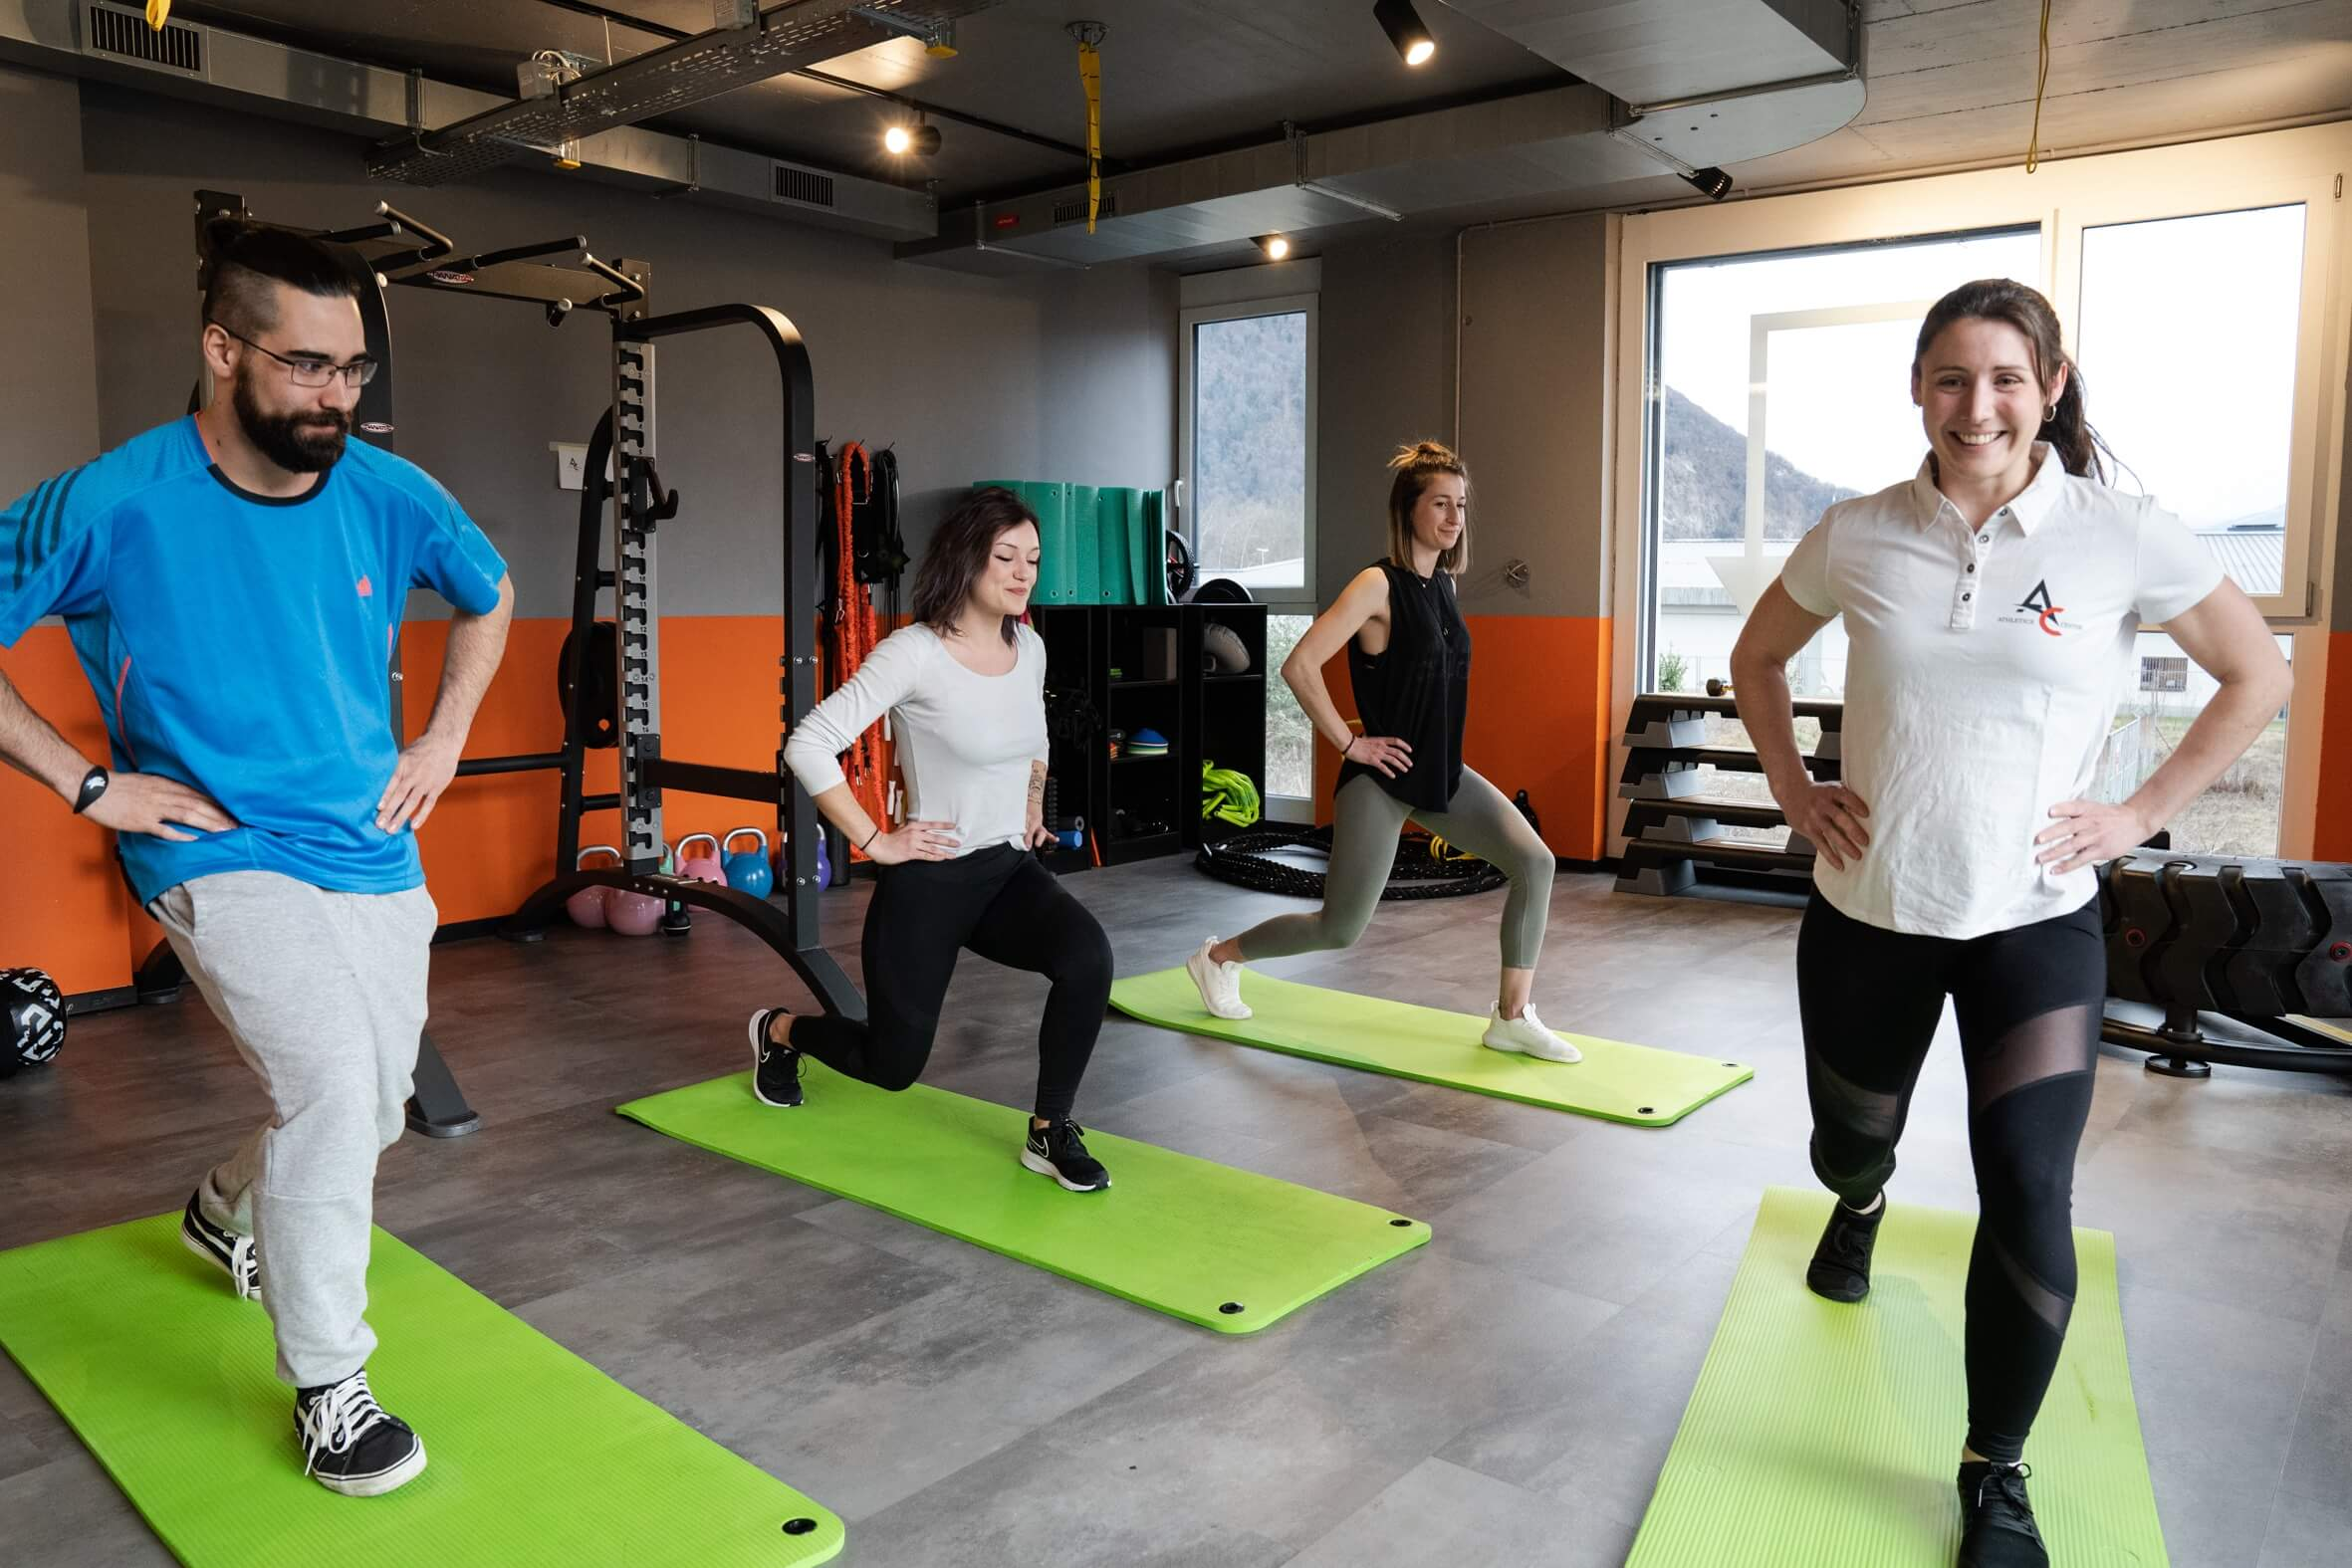 cours-collectifs-fitness-noville-vaud-1